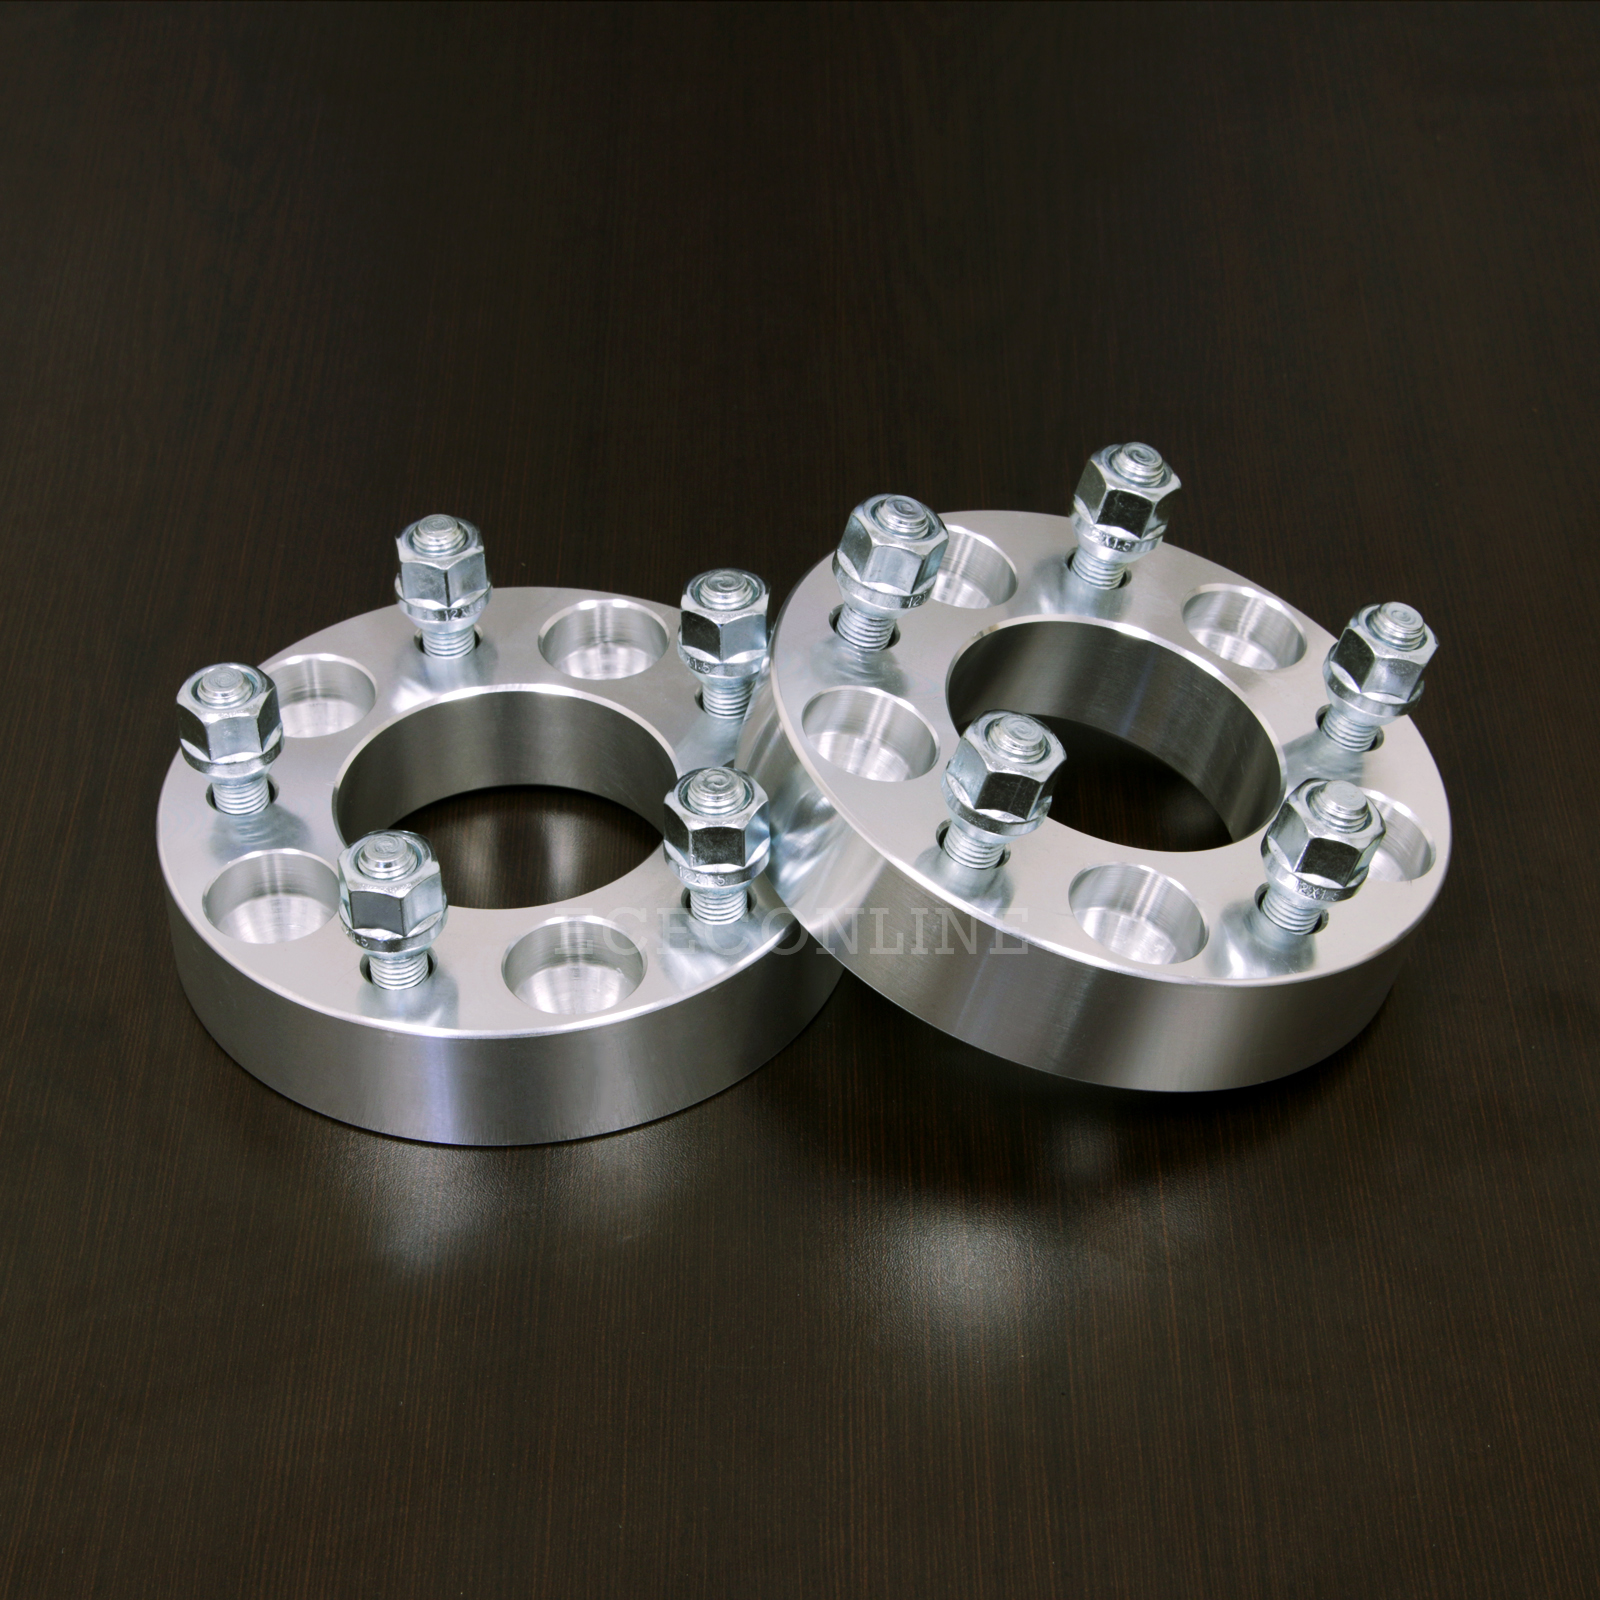 4pc Set 32mm Thick 5x108 to 5x114 3 Wheel Adapters